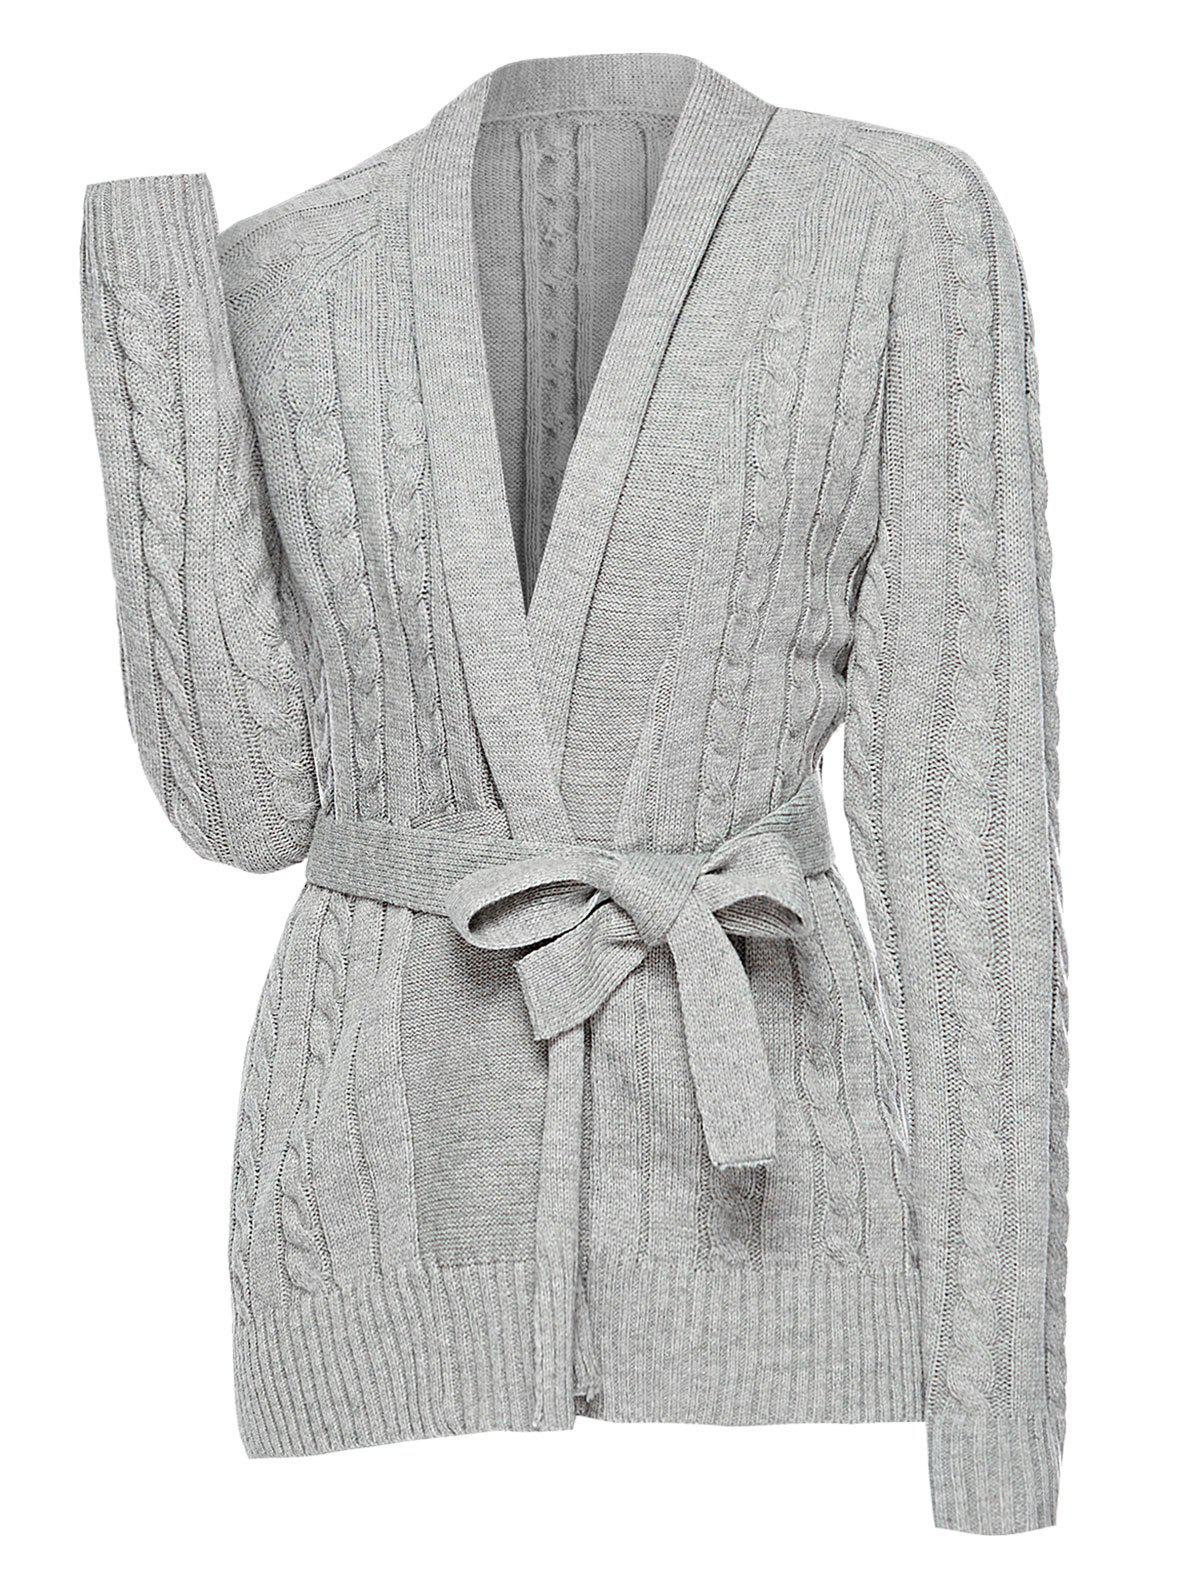 Plus Size Belted Cable Knit Cardigan - GRAY XL